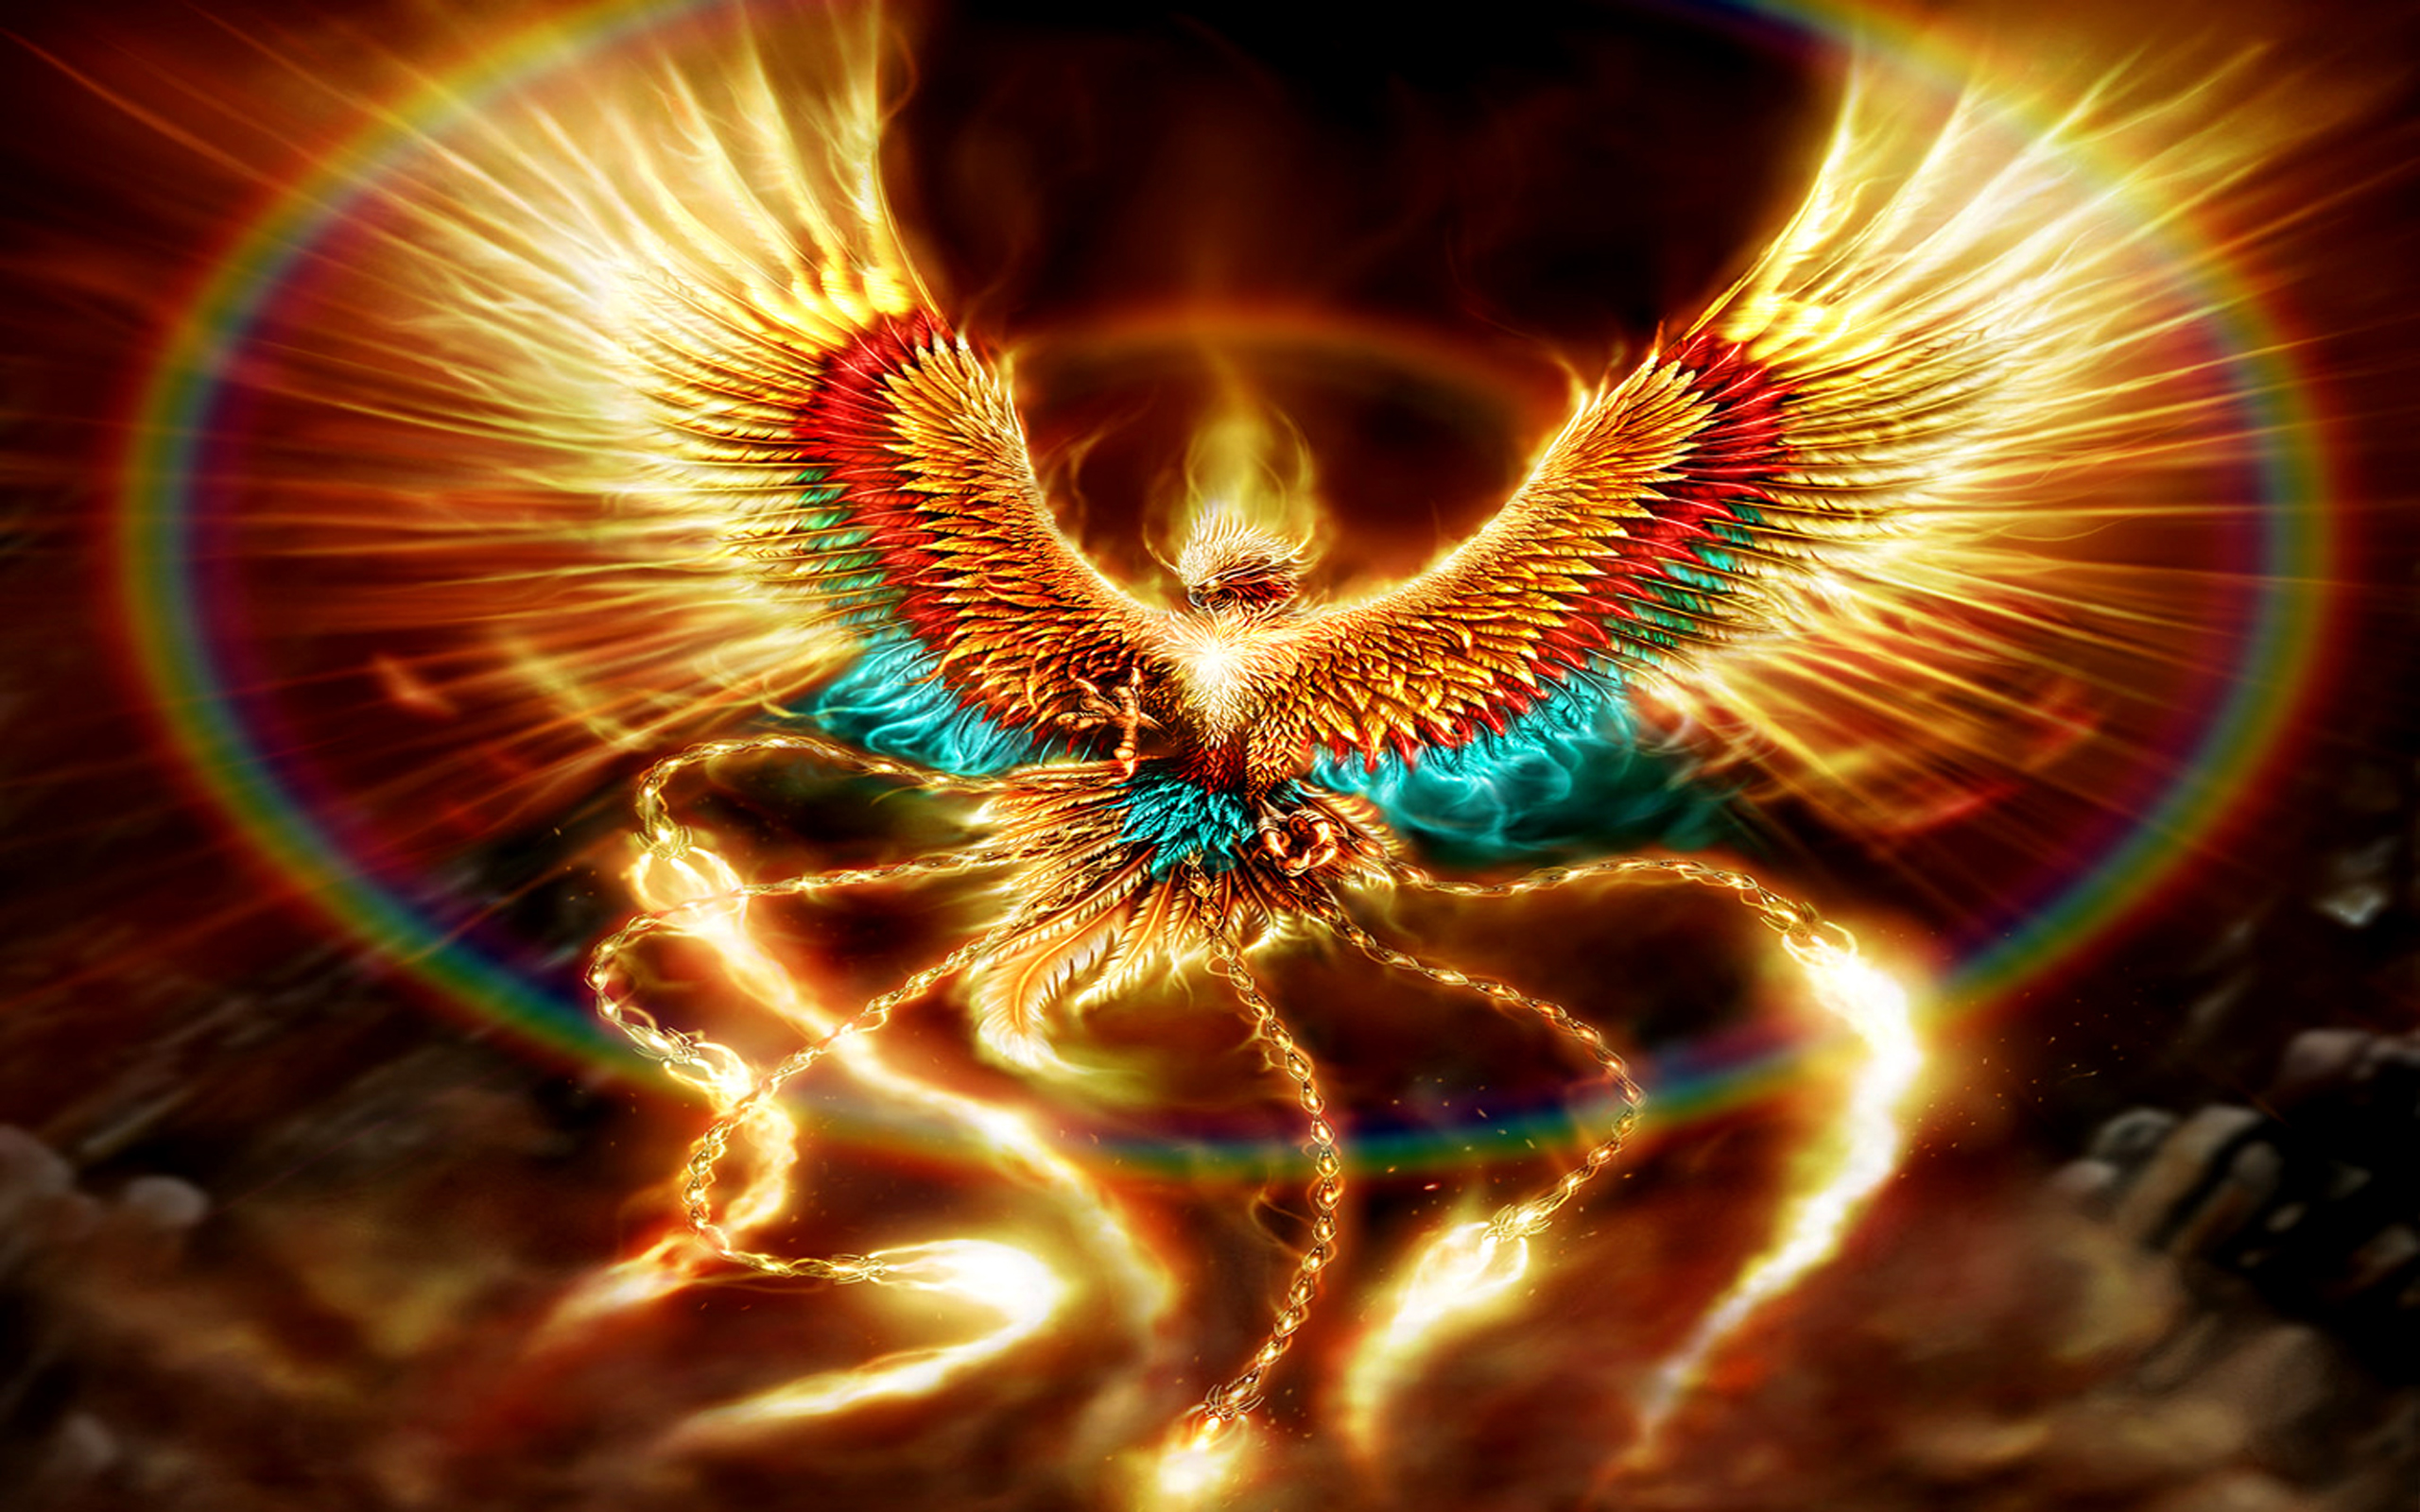 Phoenix Computer Wallpapers Desktop Backgrounds 2560x1600 ID 2560x1600